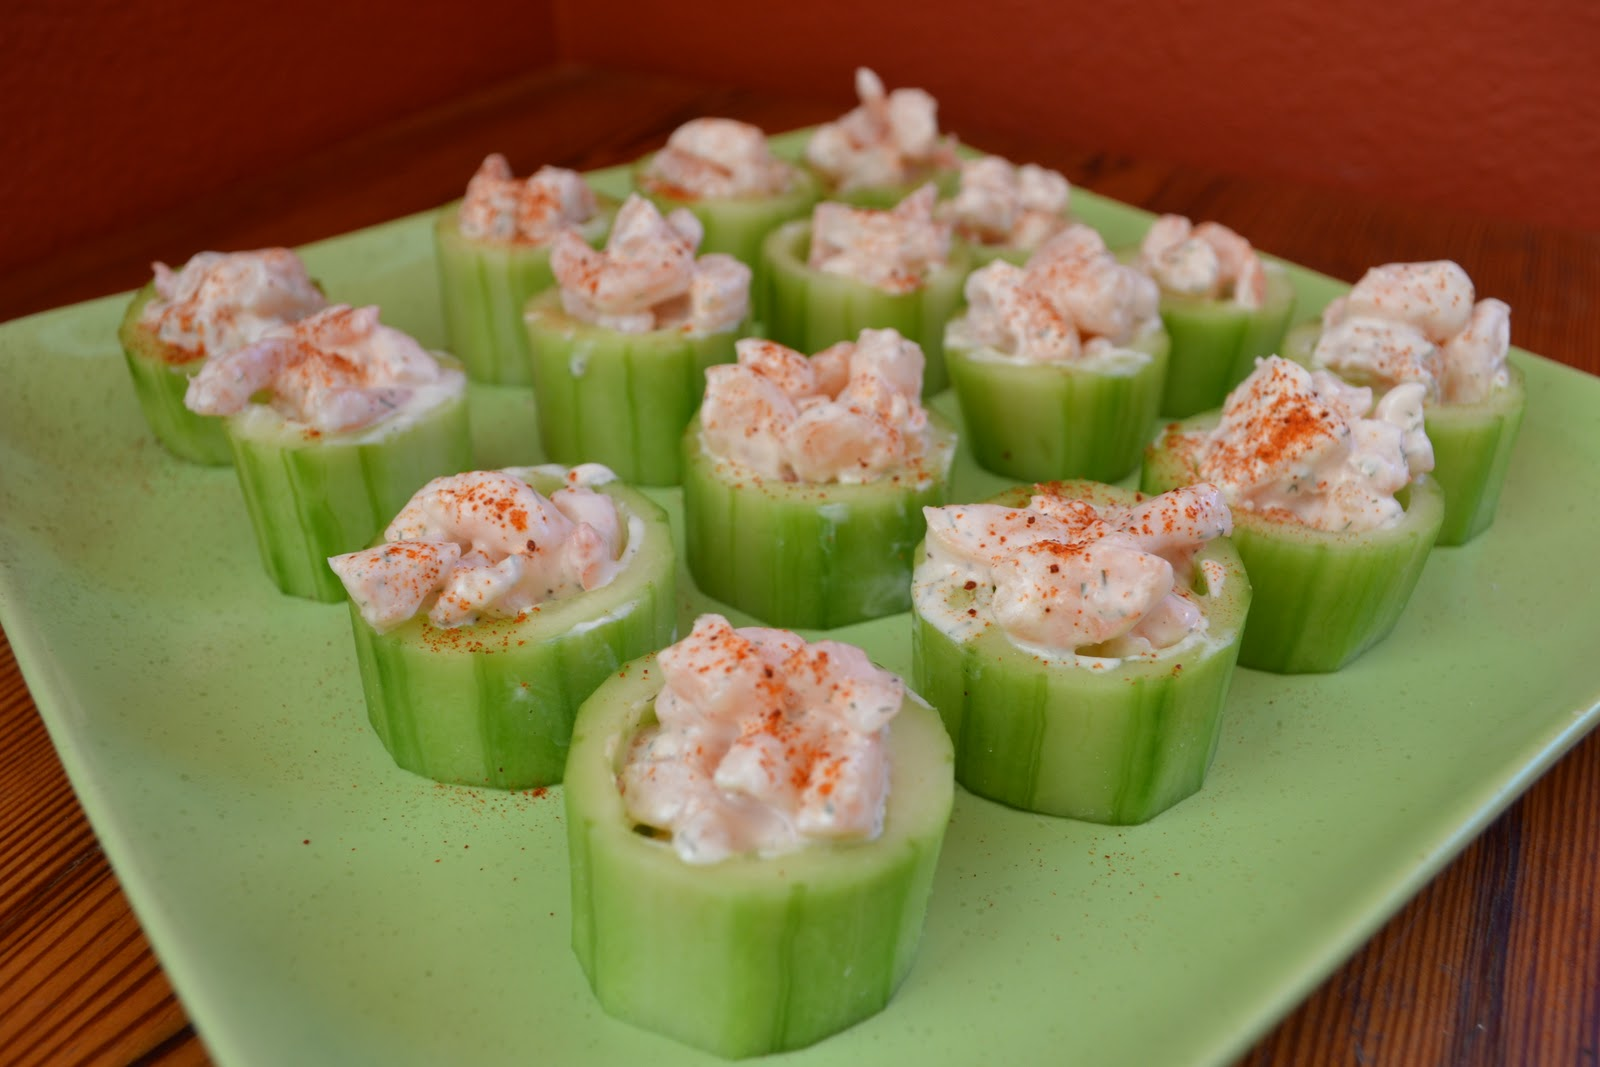 Spicy Shrimp in Cucumber Cups